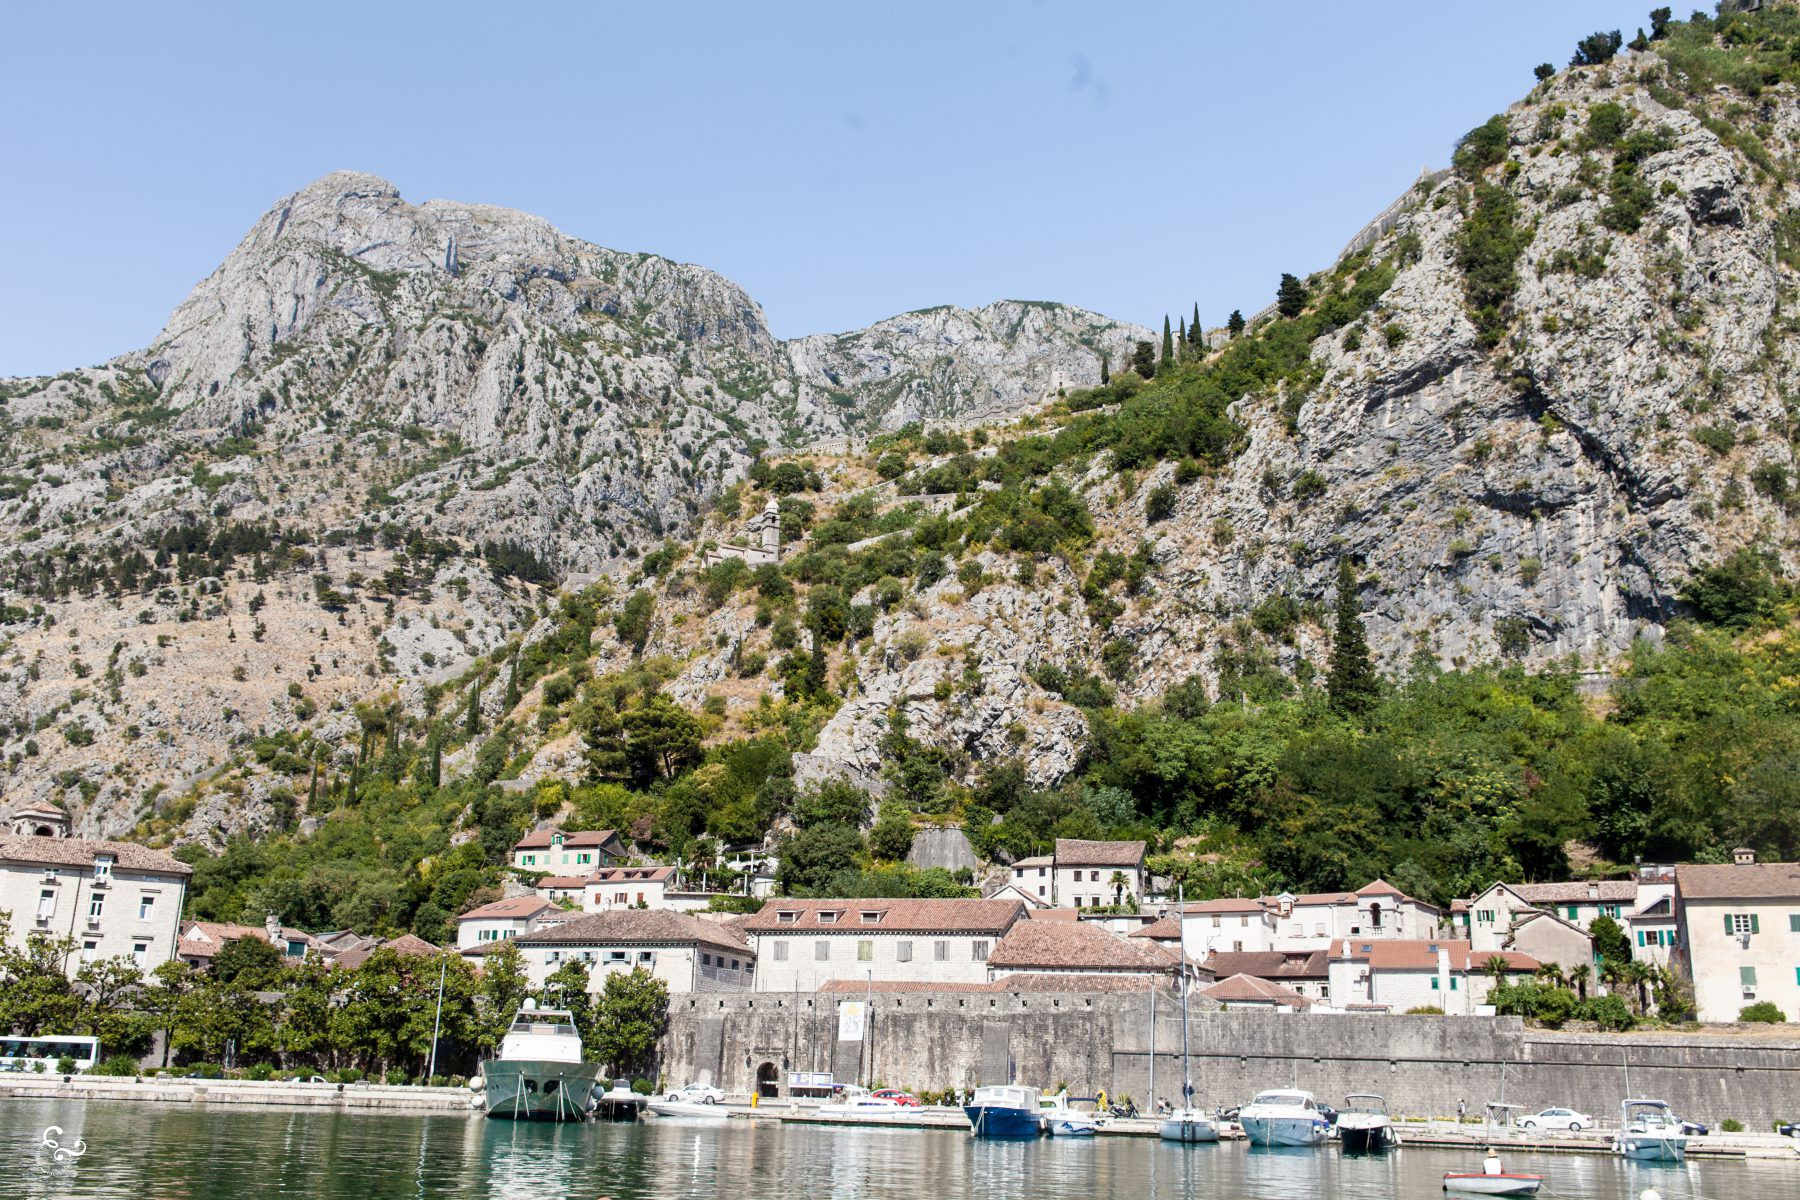 Kotor Montenegro Europe Cute Towns Lis Dingjan Nowhere & Everywhere Free Range Pixels Travel Blog Photography